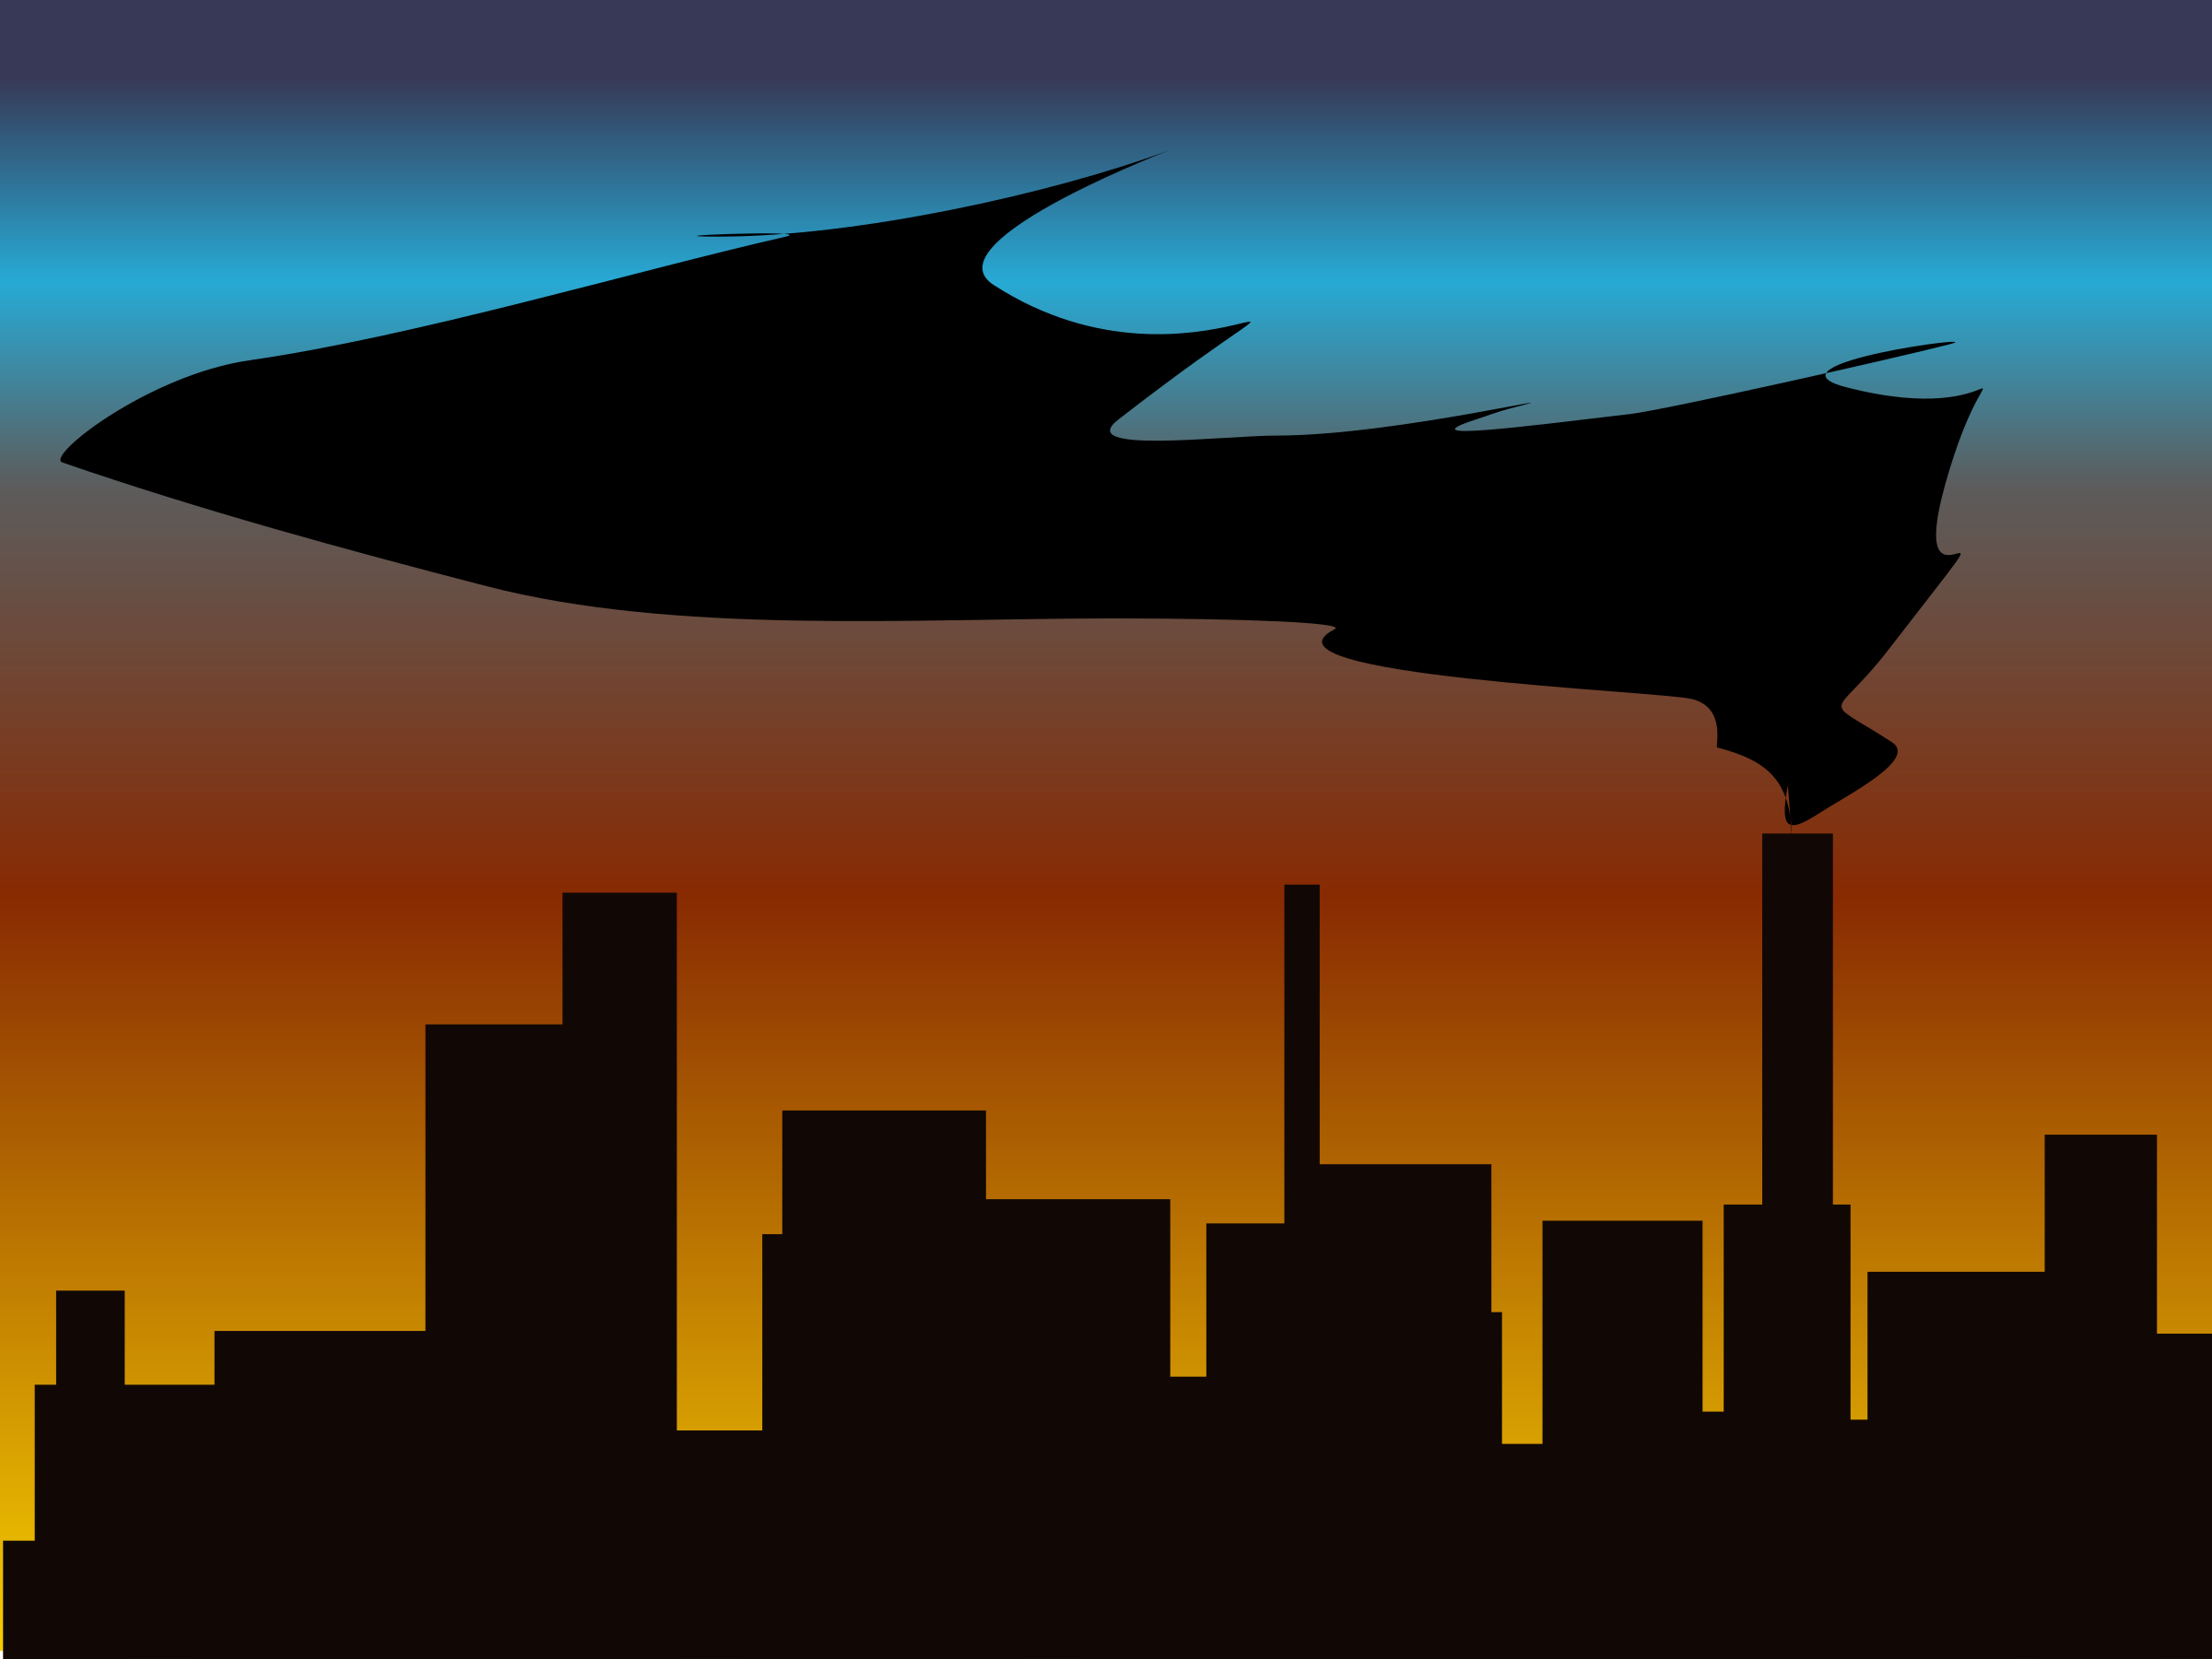 skyline with black smoke by witchlines